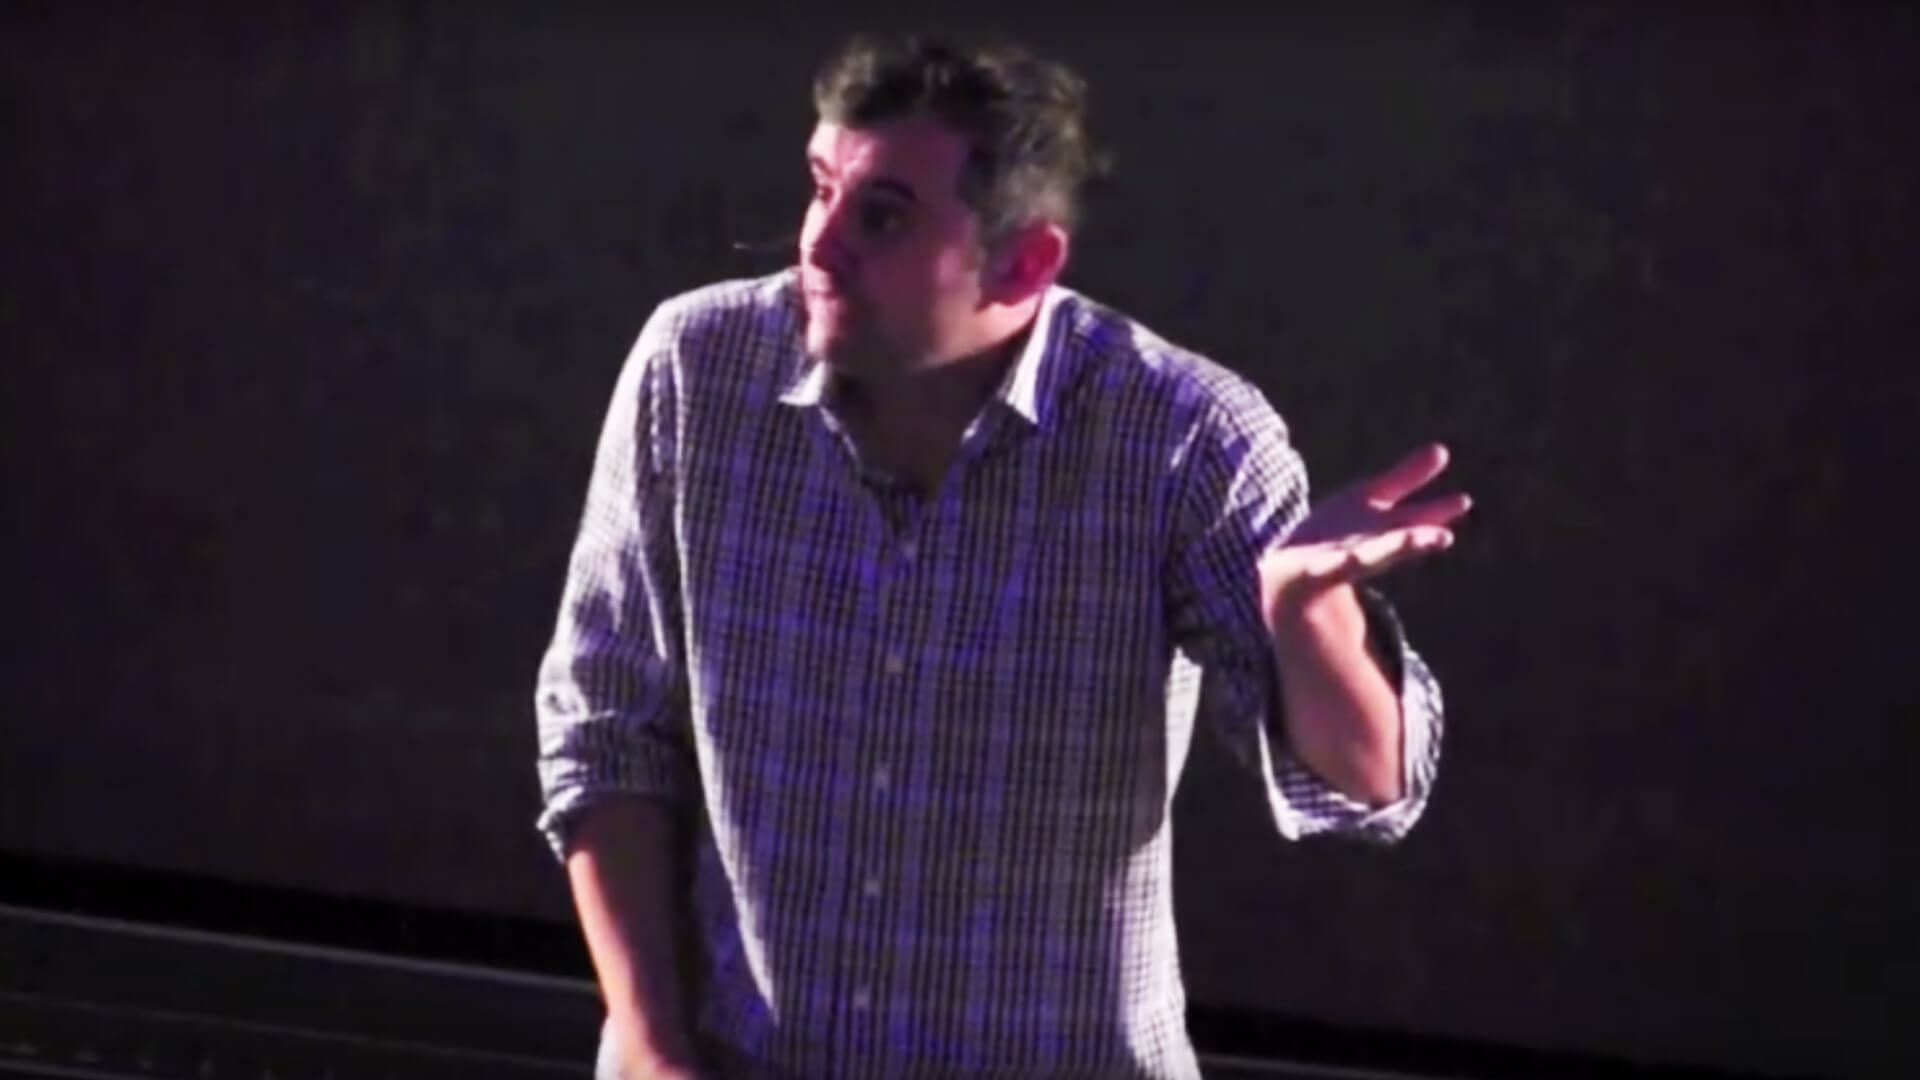 Gary Vaynerchuk gives a Q&A session with The Lamppost Group in Chattanooga